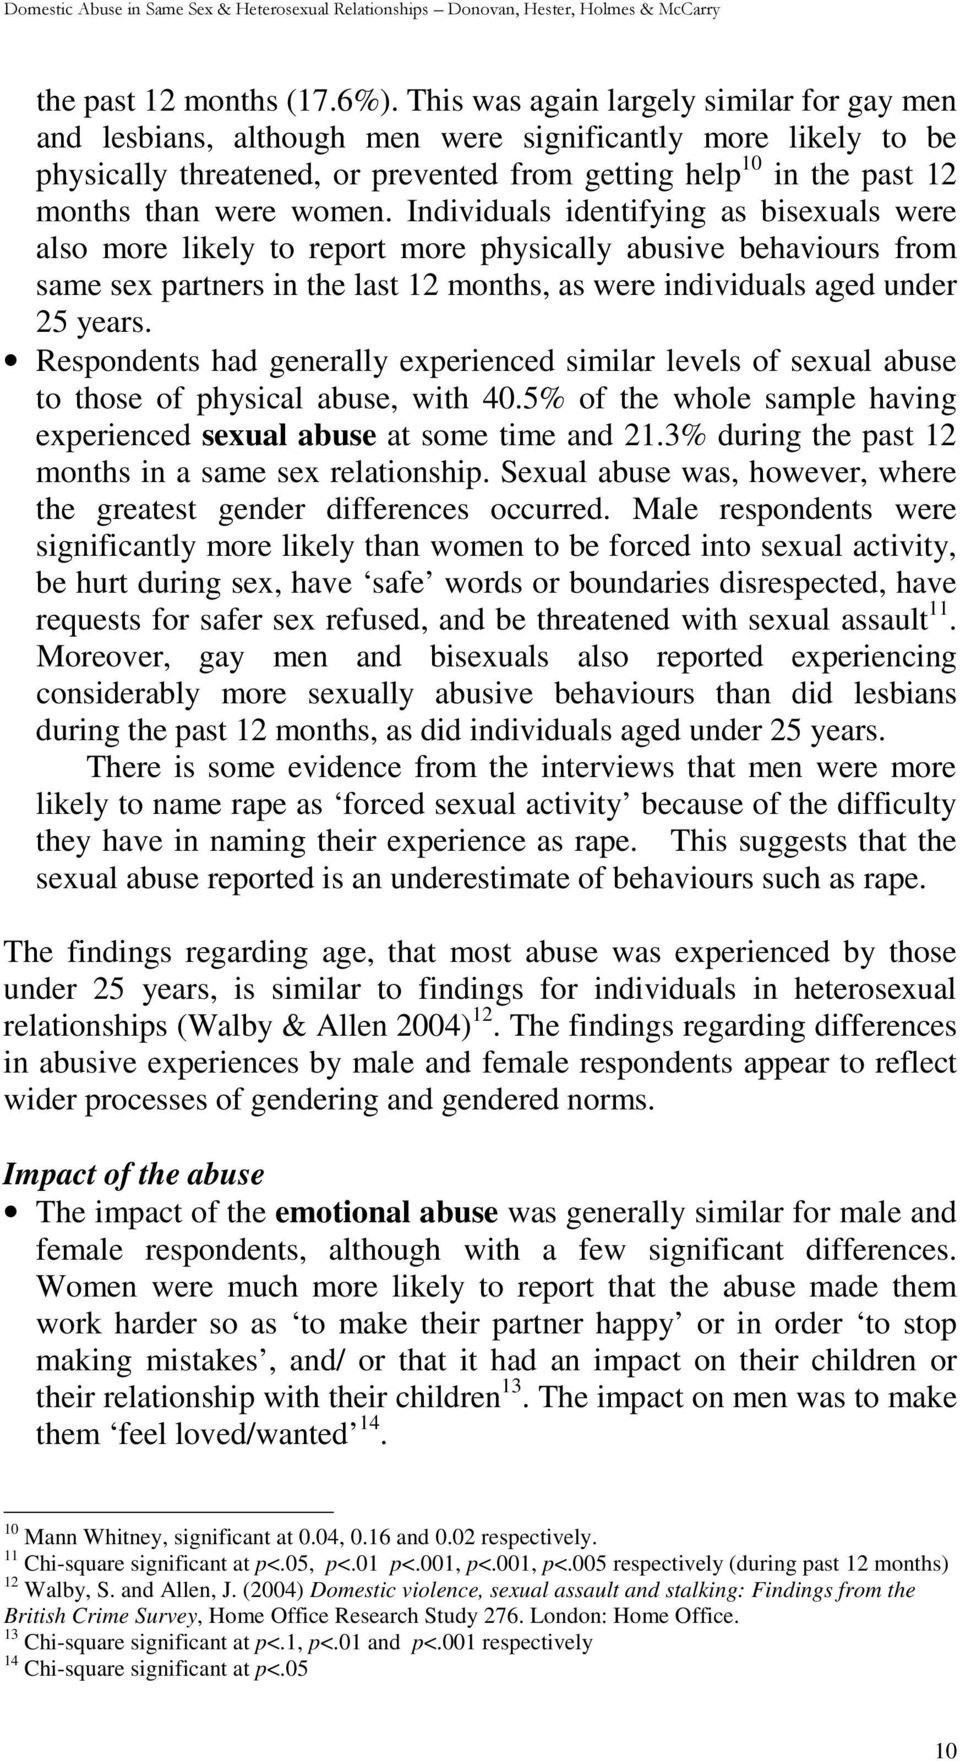 women. Individuals identifying as bisexuals were also more likely to report more physically abusive behaviours from same sex partners in the last 12 months, as were individuals aged under 25 years.